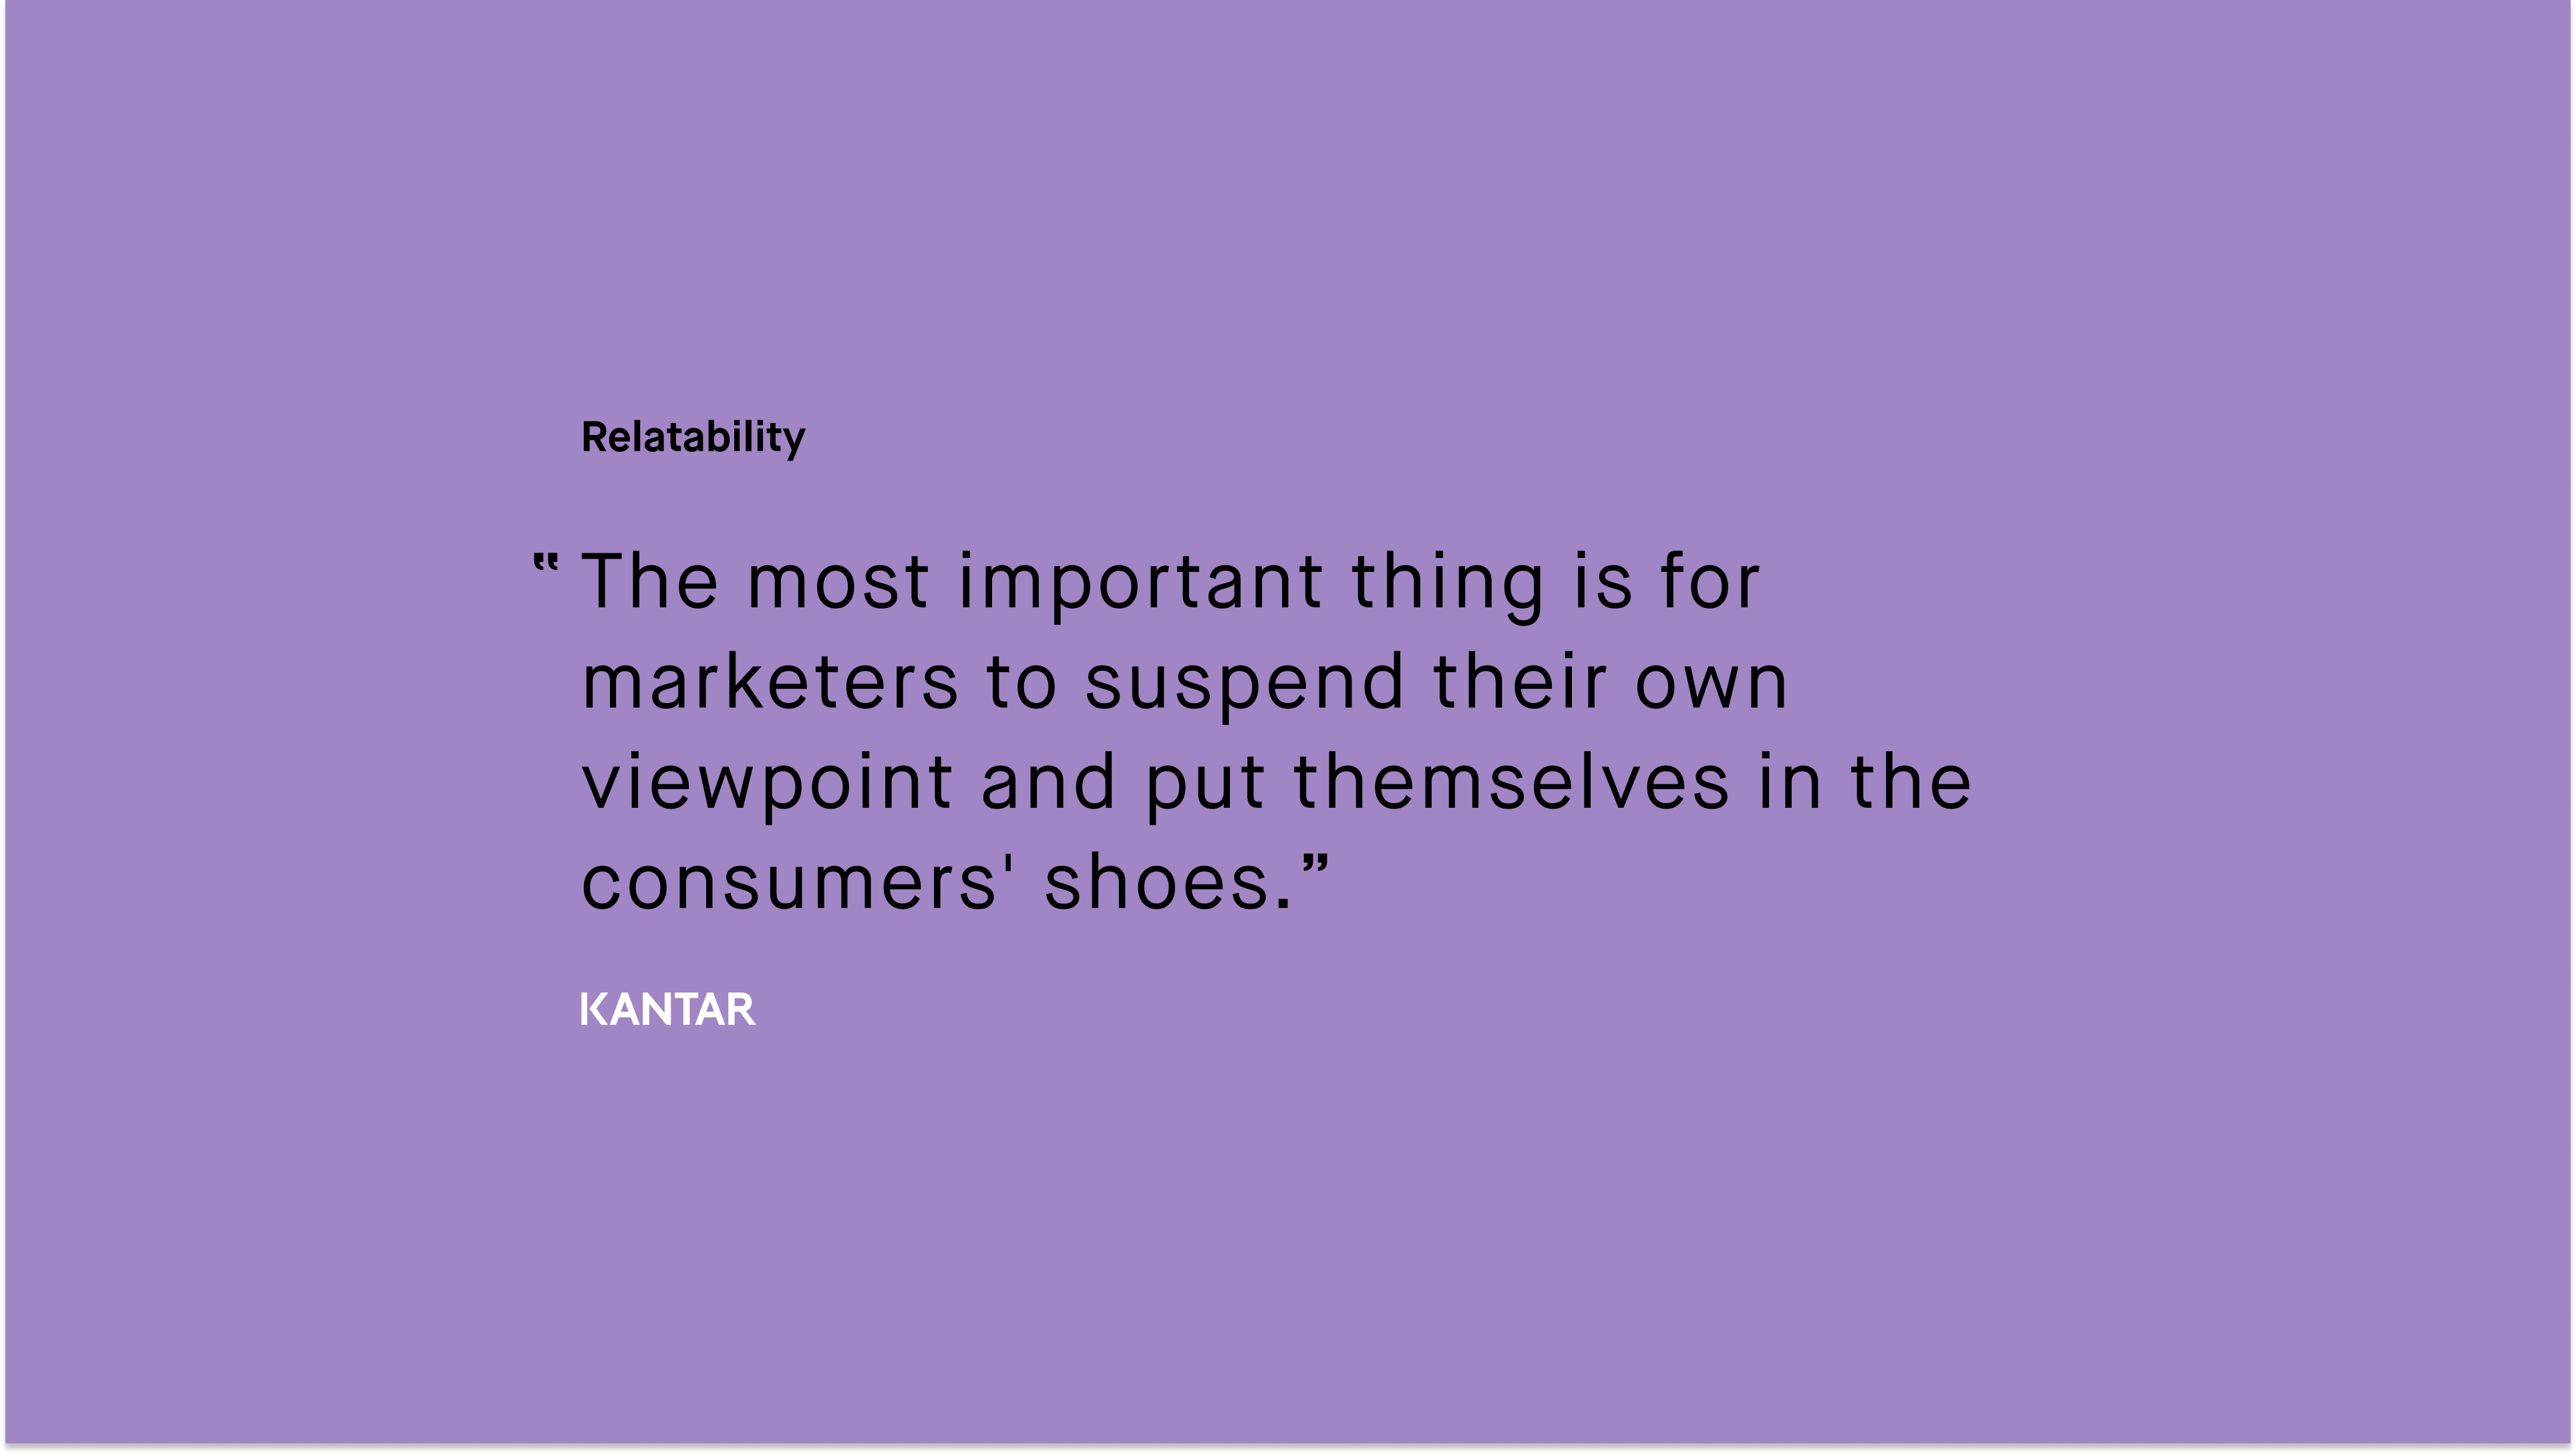 #paid_Kantar_The most important thing is for marketers to suspend their own viewpoint and put themselves in the consumers shoes